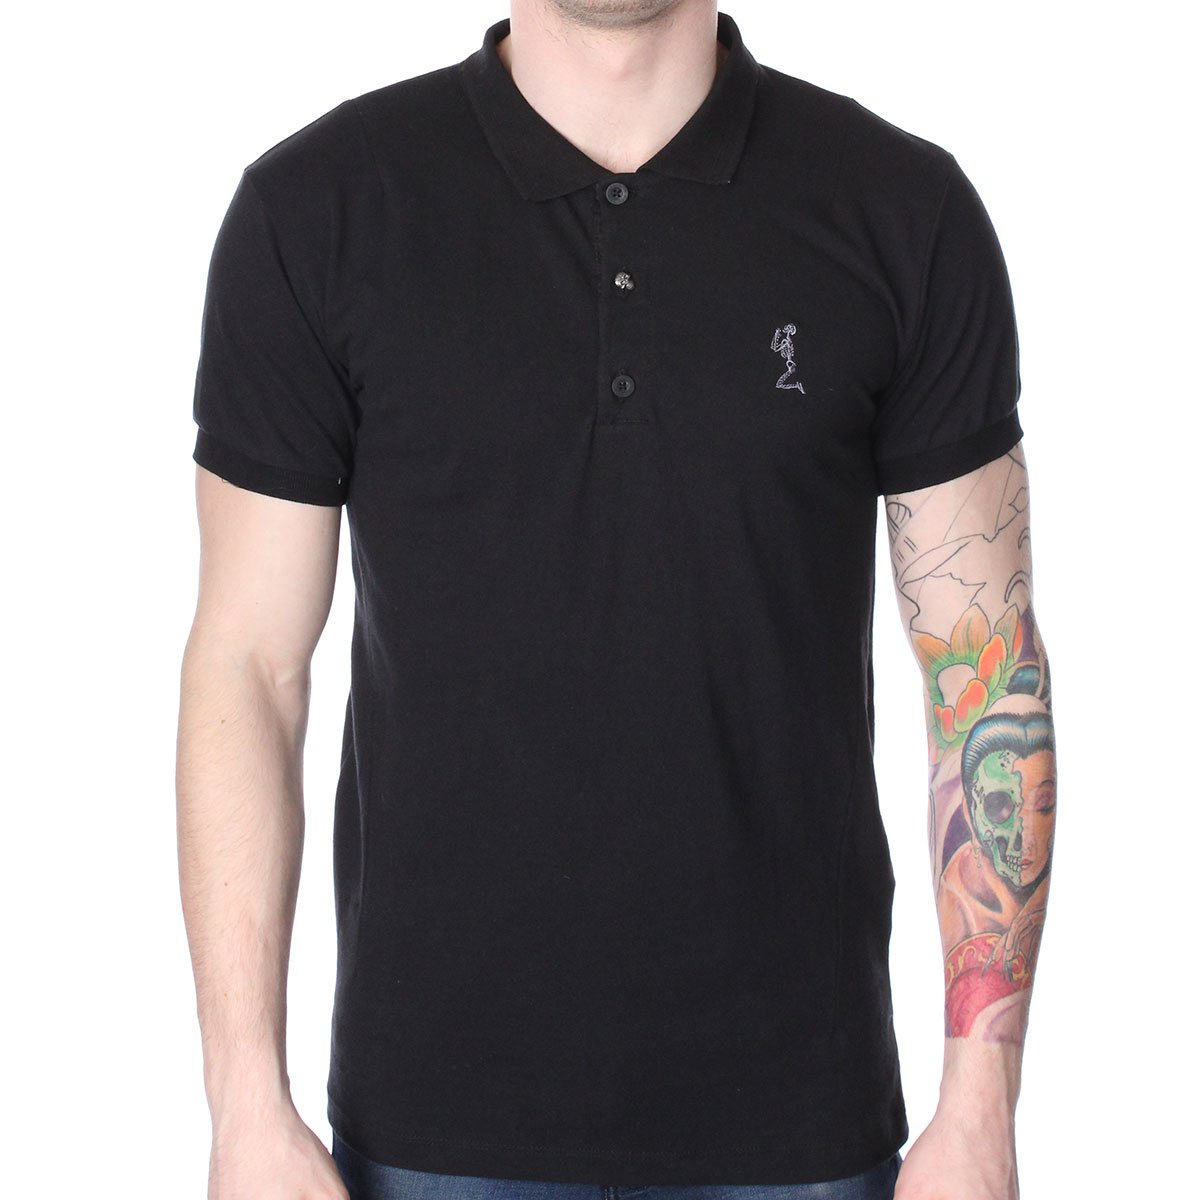 Religion Plain Polo T Shirt Religion From The Menswear